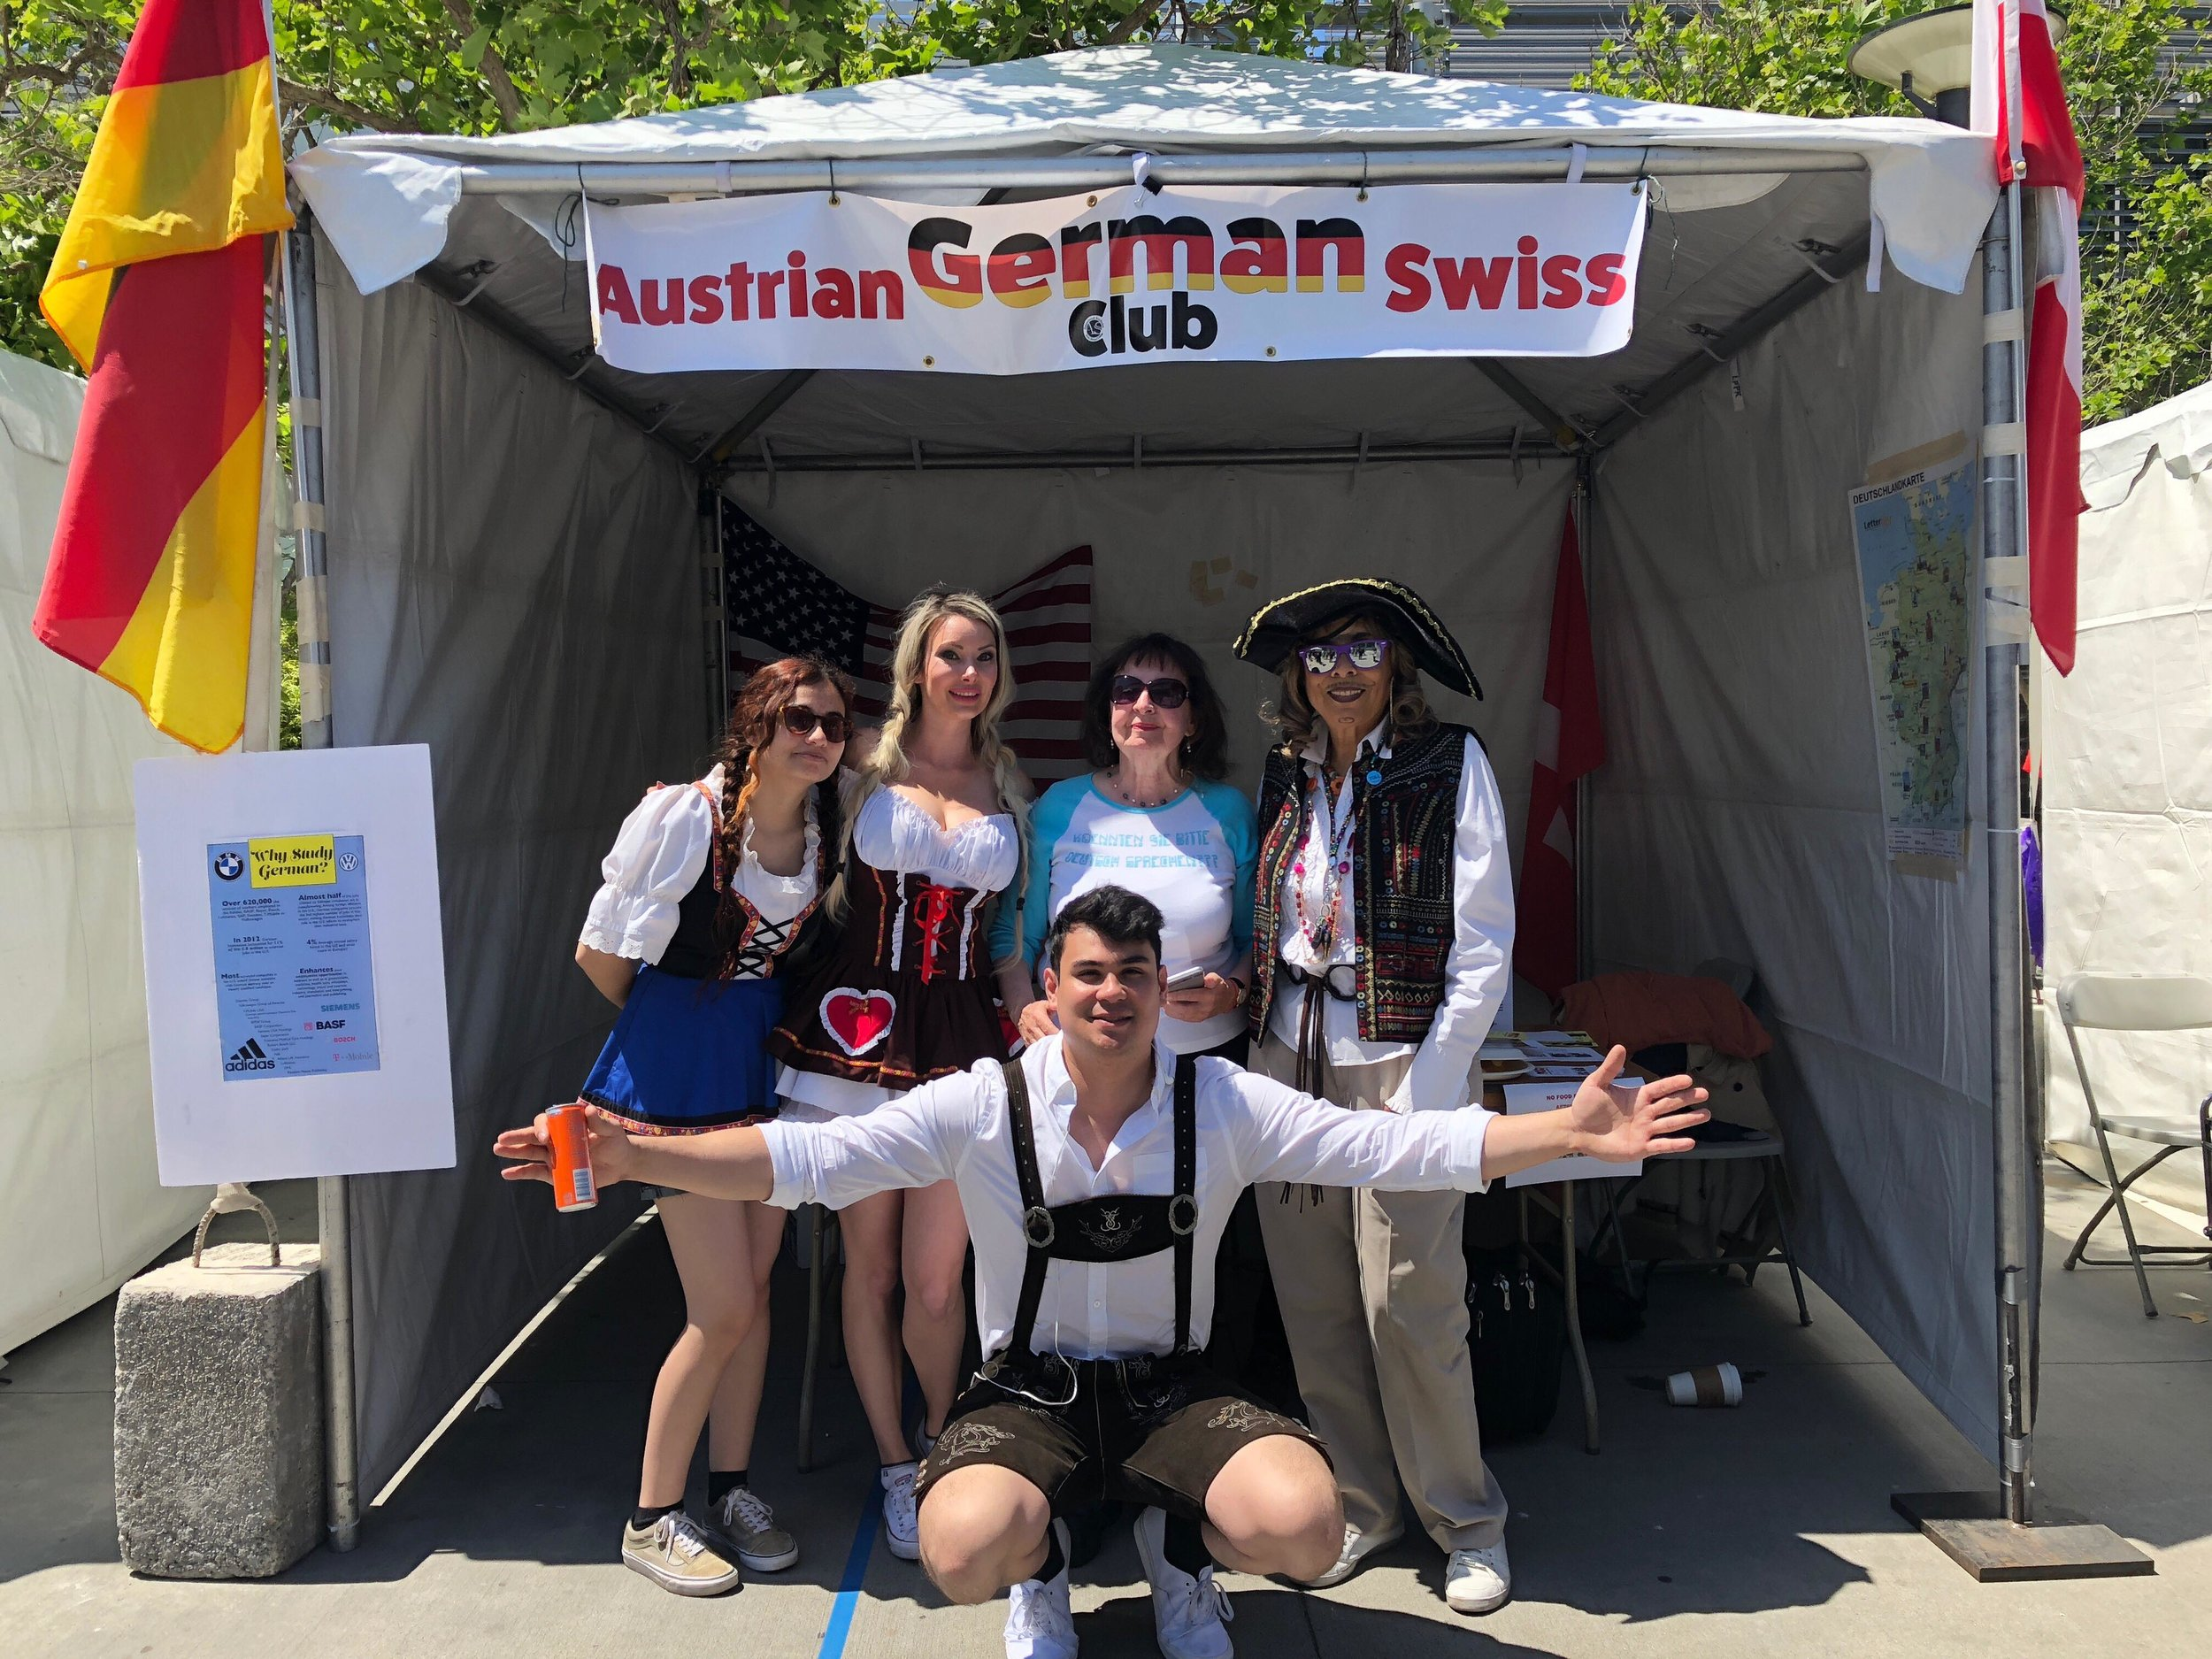 Representing the German, Austrian and Swiss club at Club Row on Thursday, April 26 were club members, (left) Ariana Castillo, Elizabeth Pertschi, Dr. Annelise Gerl, Samuel Lukey (front), and Administrative Assistant, Michelle Harrison (right). (Photo Courtesy of the German, Austrian and Swiss club.)